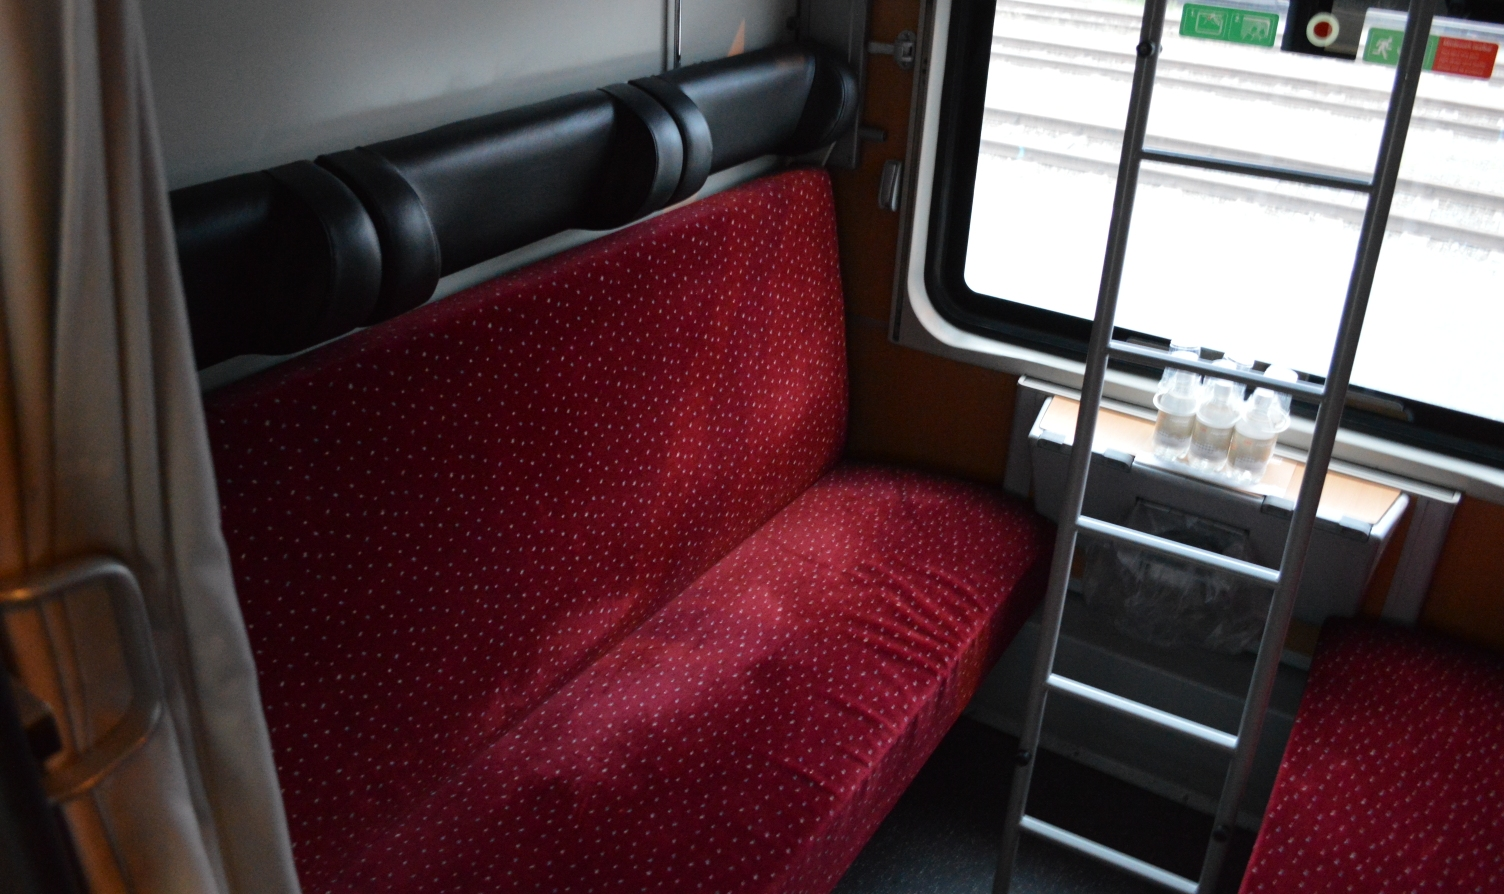 Coupé met ligplaatsen in de Nightjet van de ÖBB ©Noord West Express